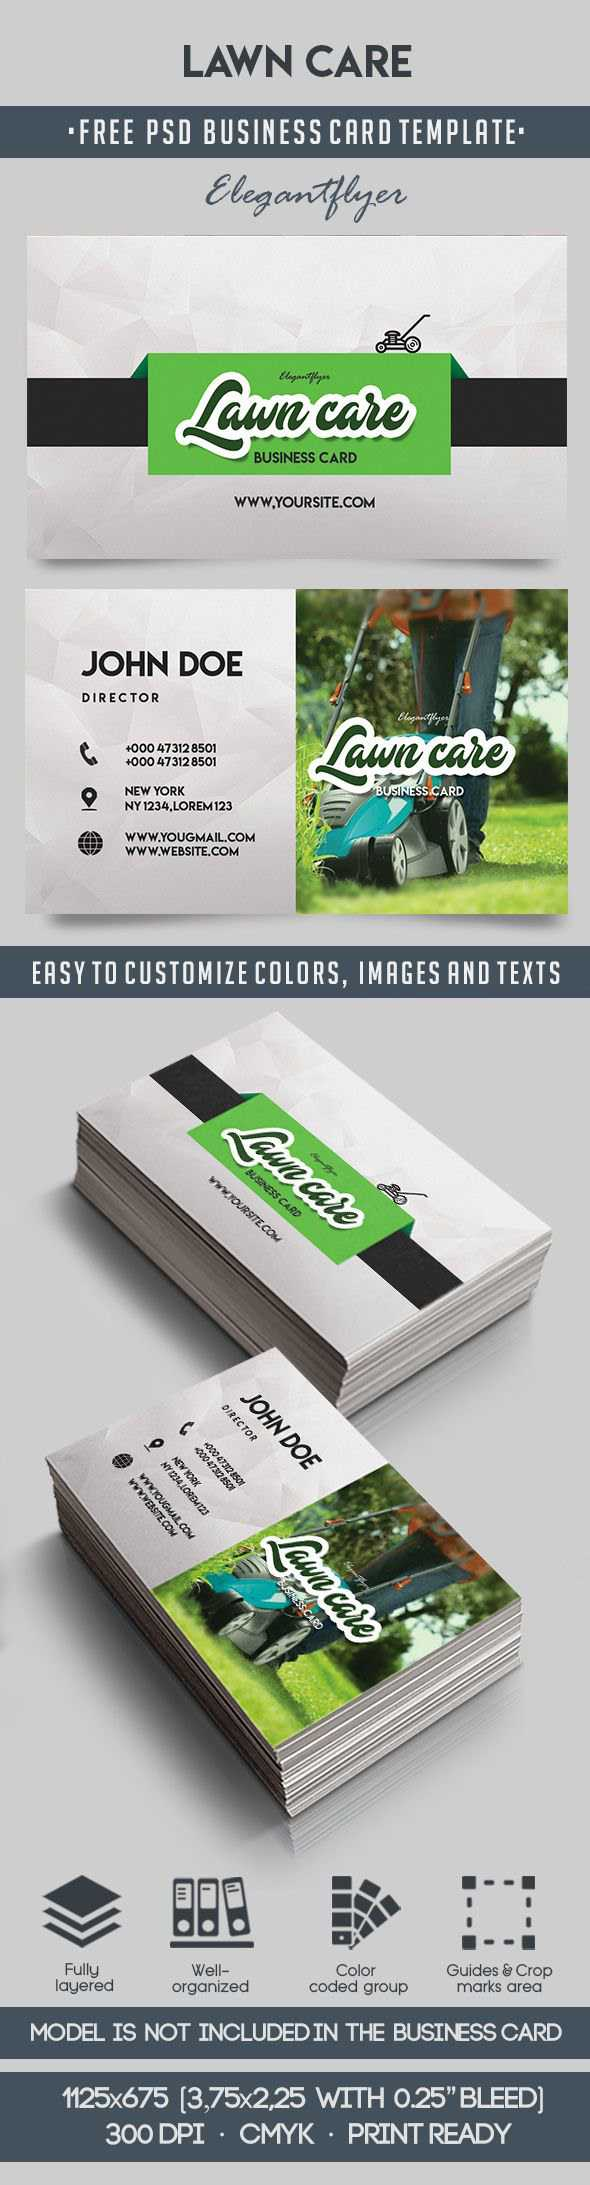 Lawn Care – Free Business Card Templates Psd On Behance For Lawn Care Business Cards Templates Free